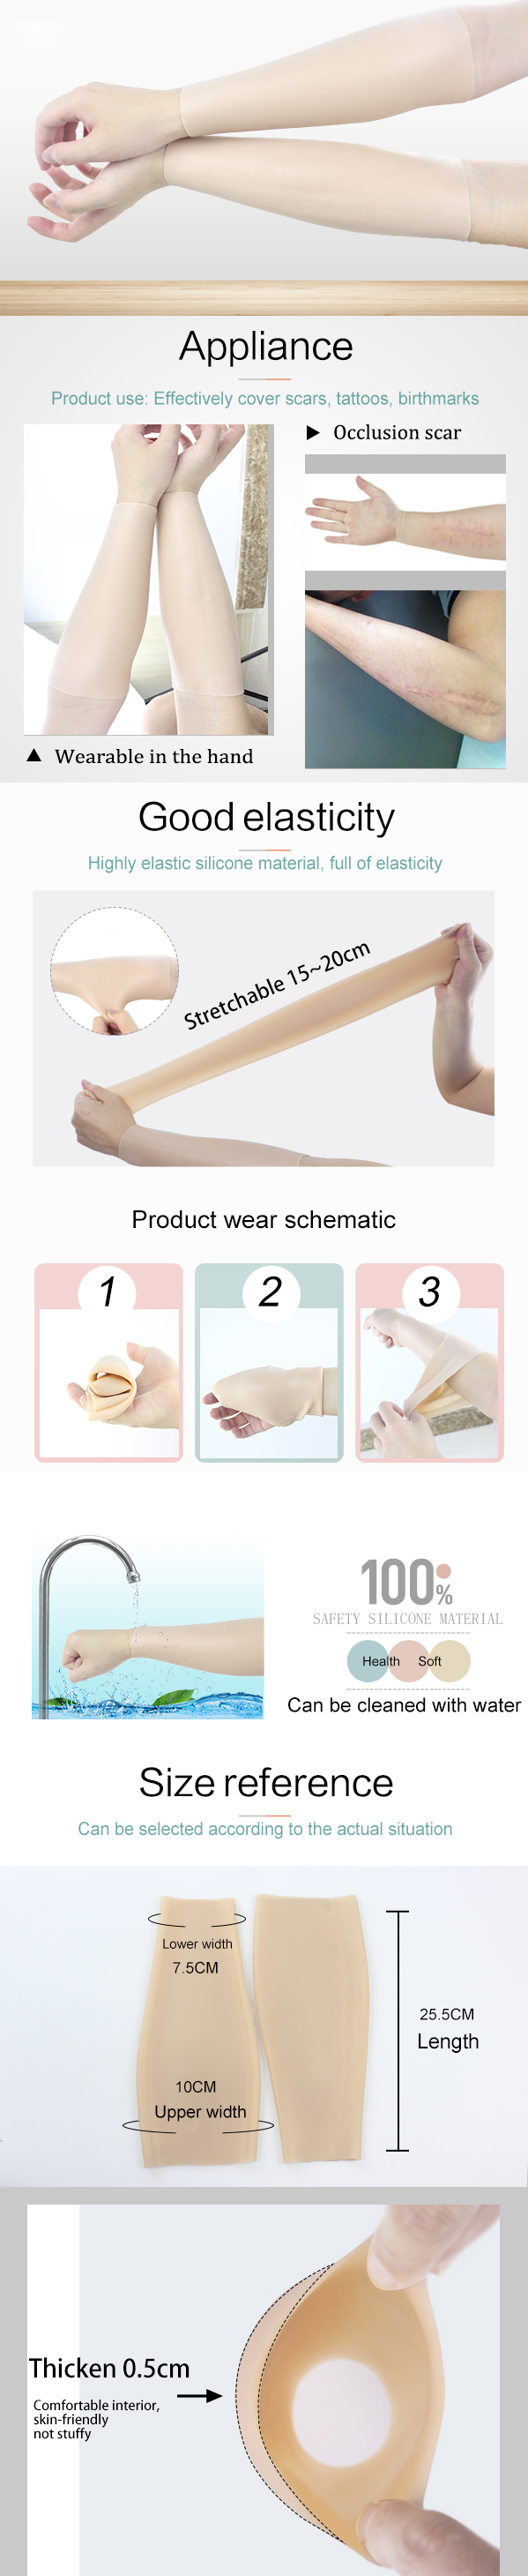 Silicone Arm Sleeves - Product Details